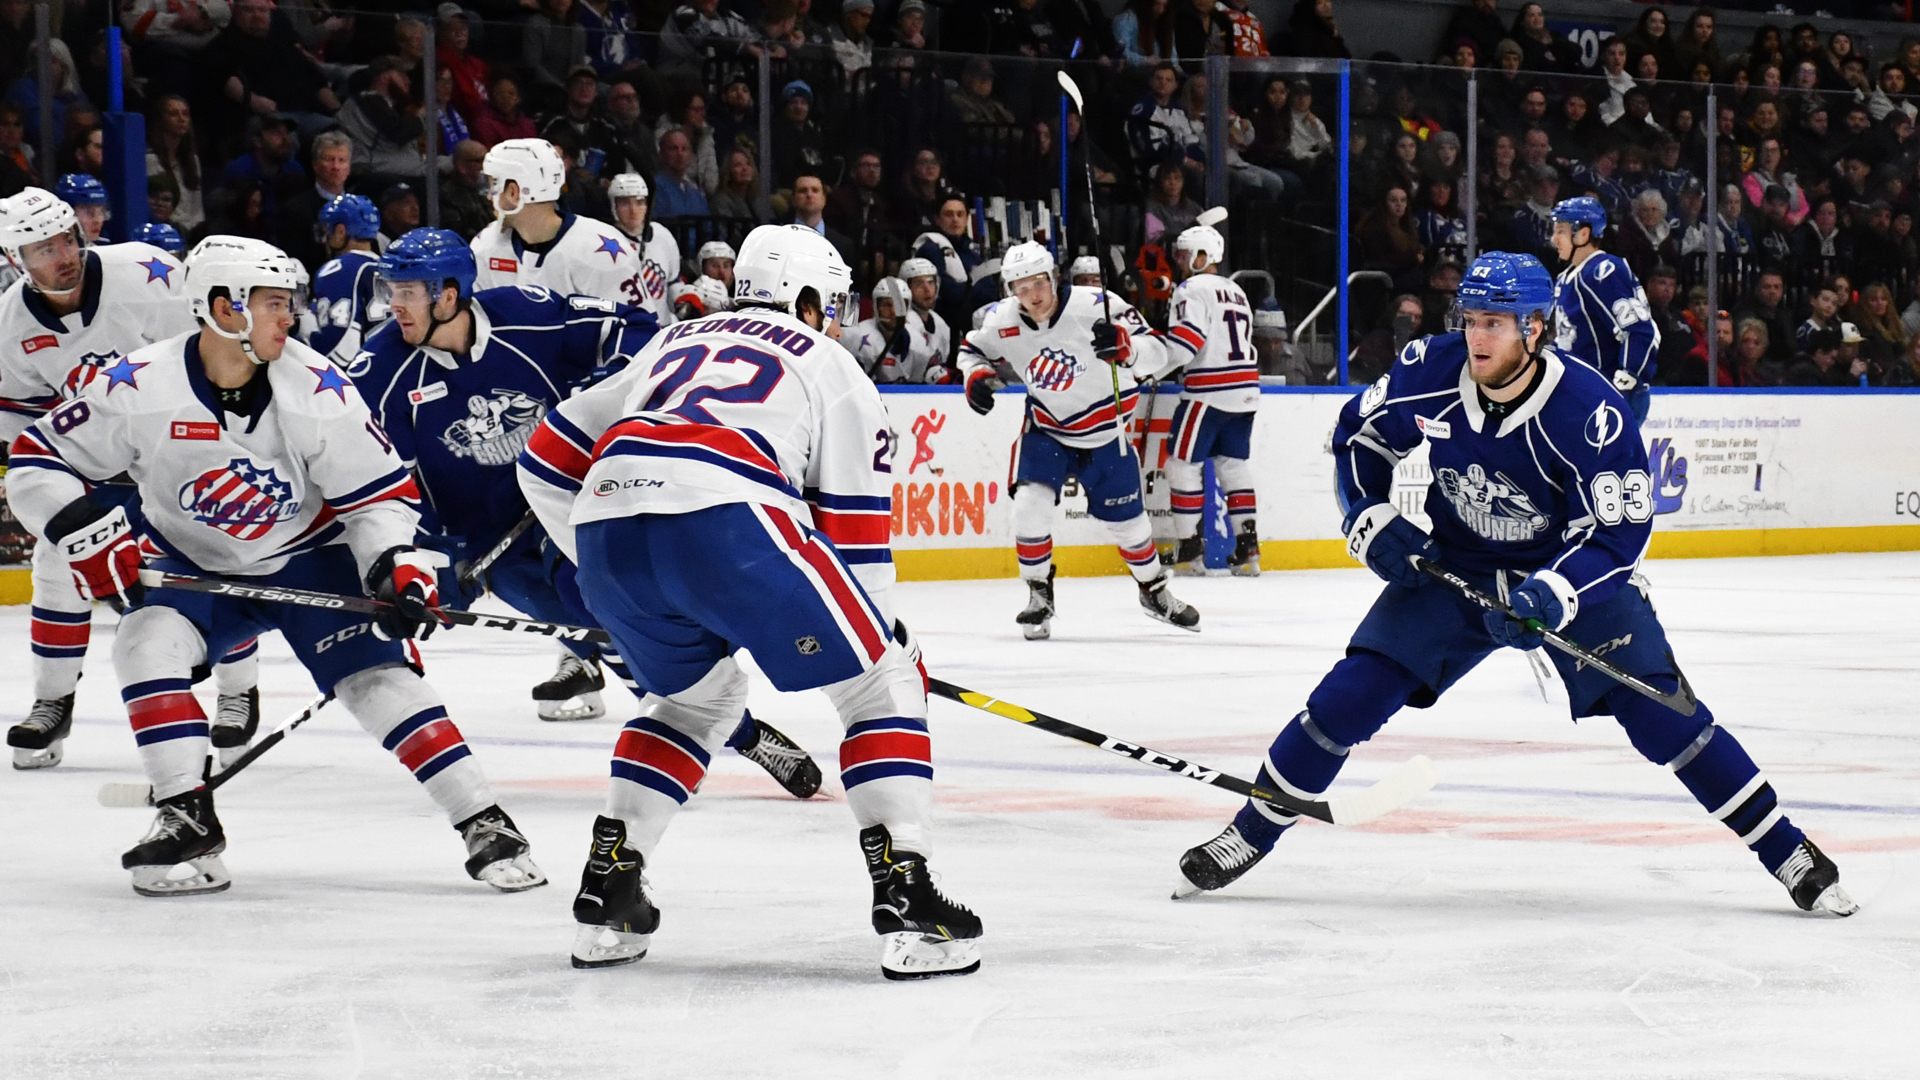 Amerks get doubled up by Crunch